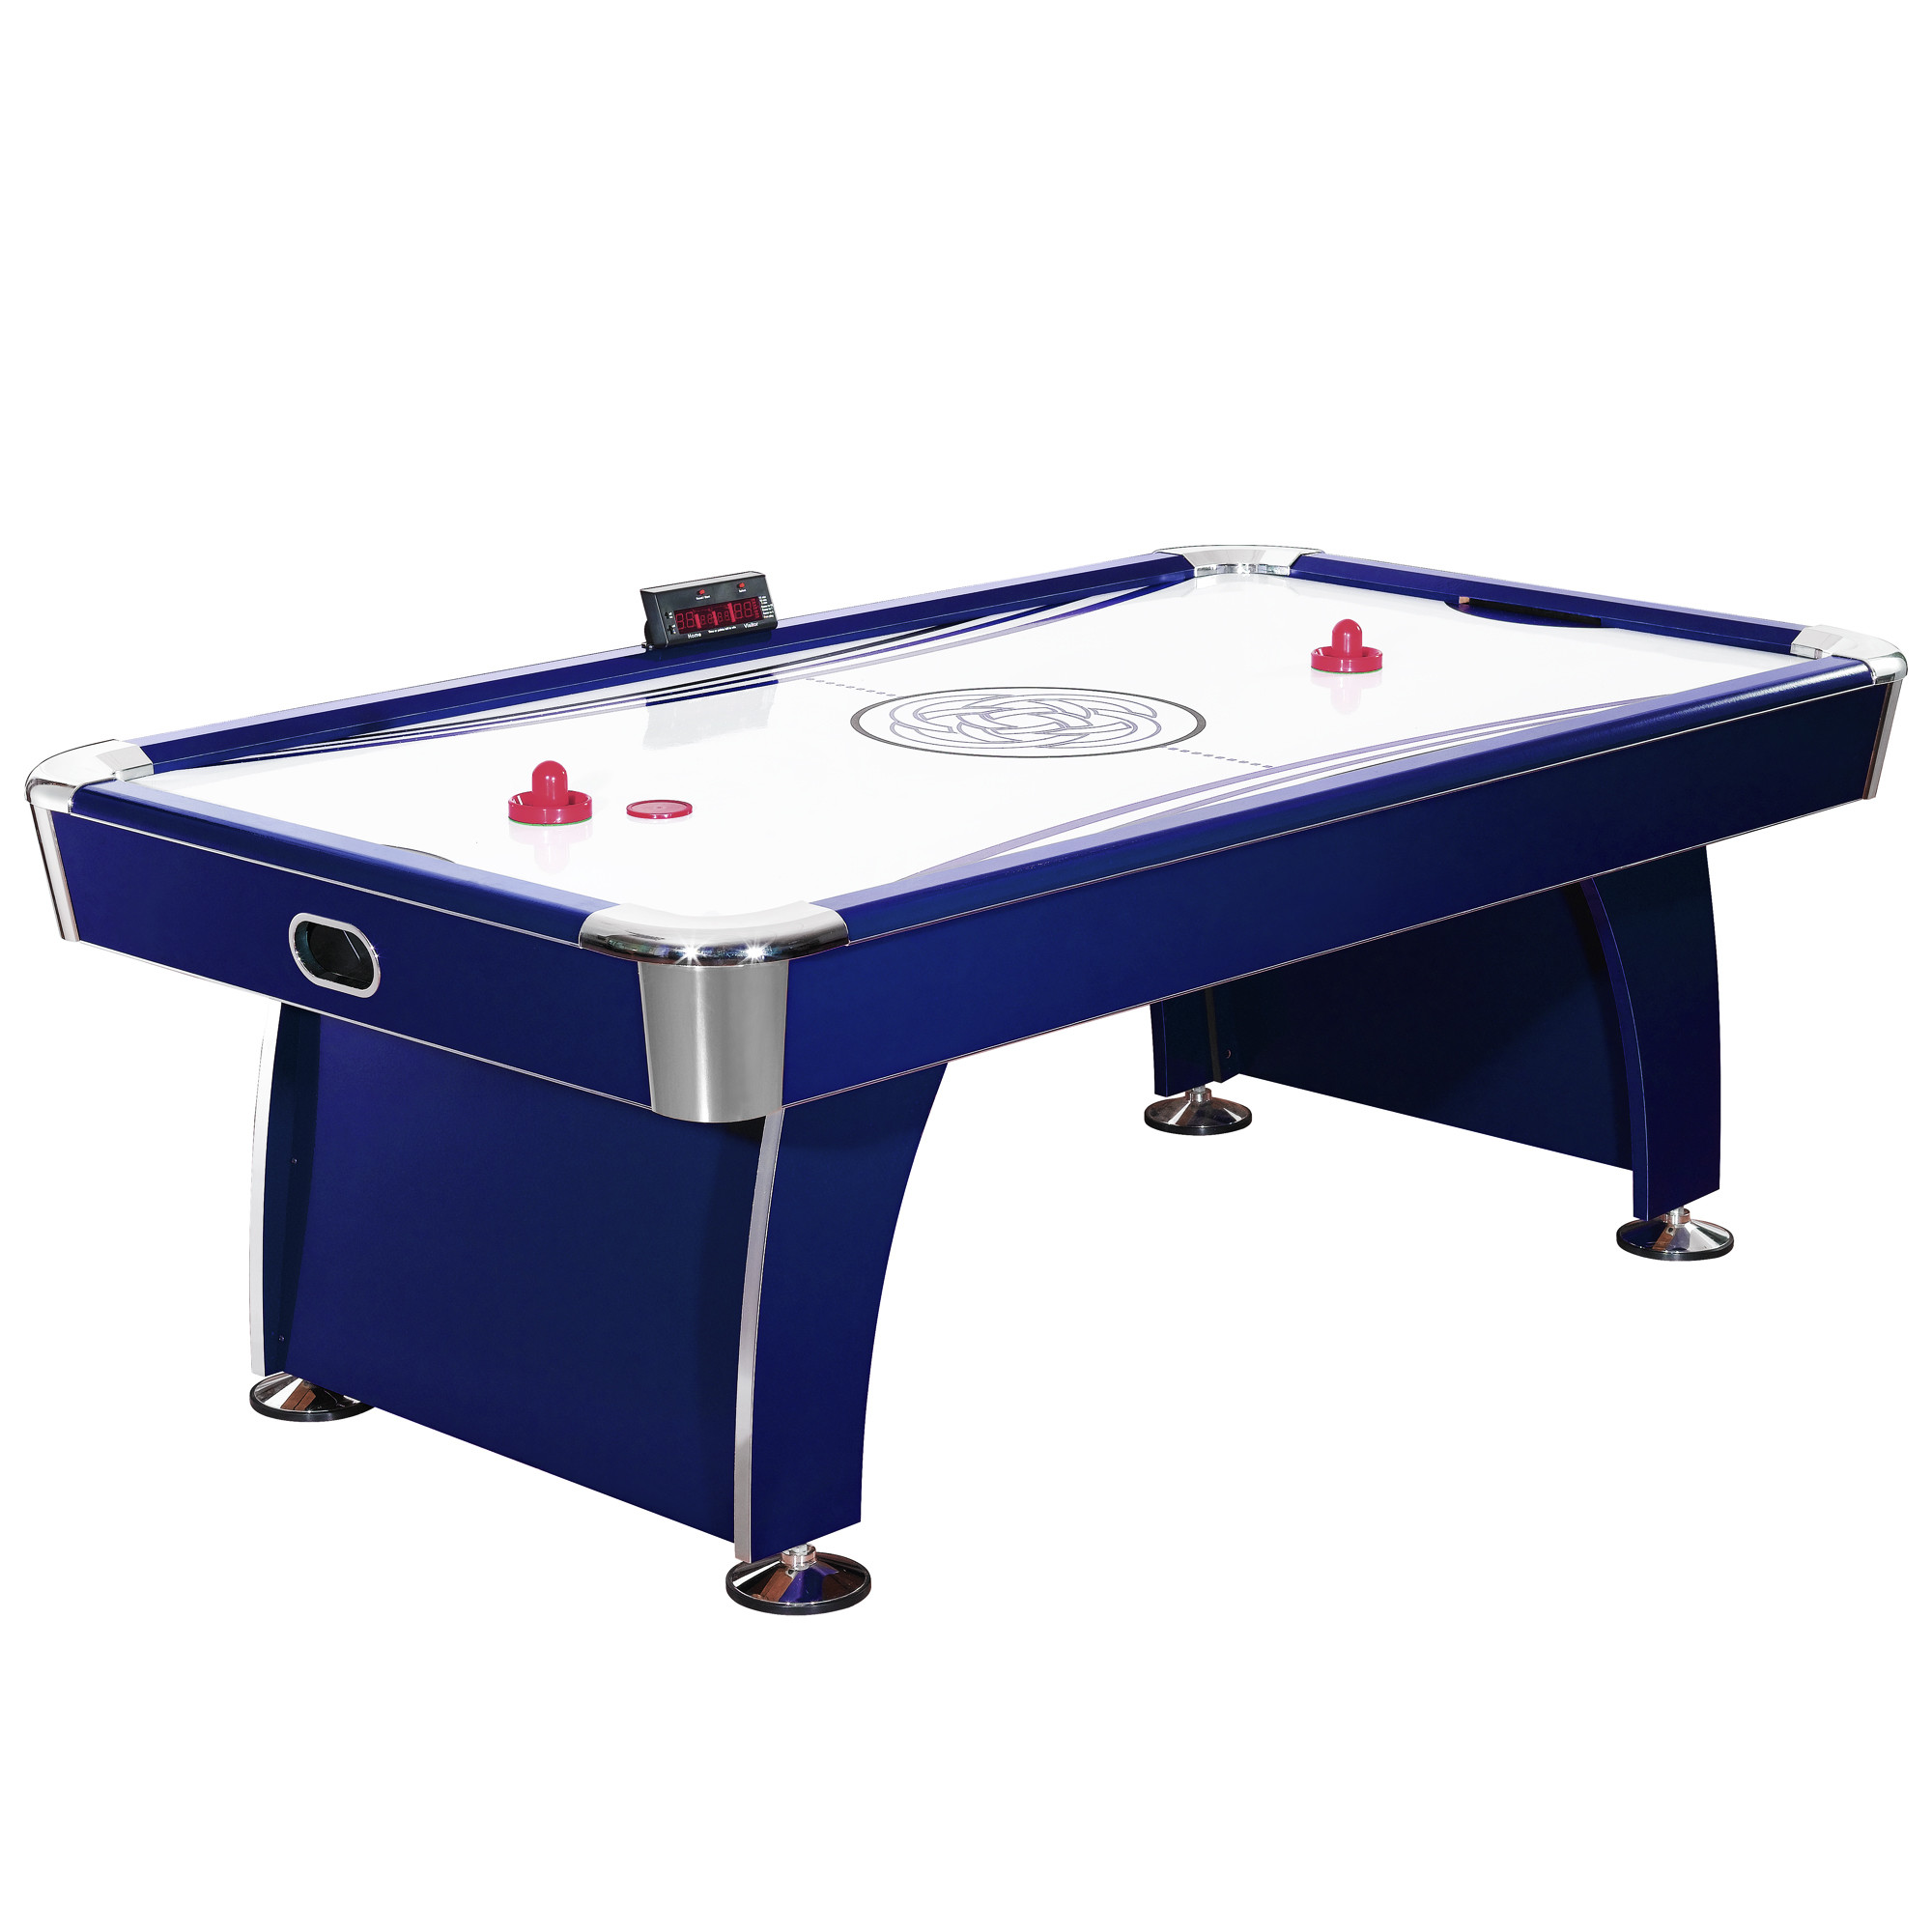 Hathaway Phantom 7.5-Foot Air Hockey Game Table with Electronic Scoring, Dual Blowers and Automatic Return